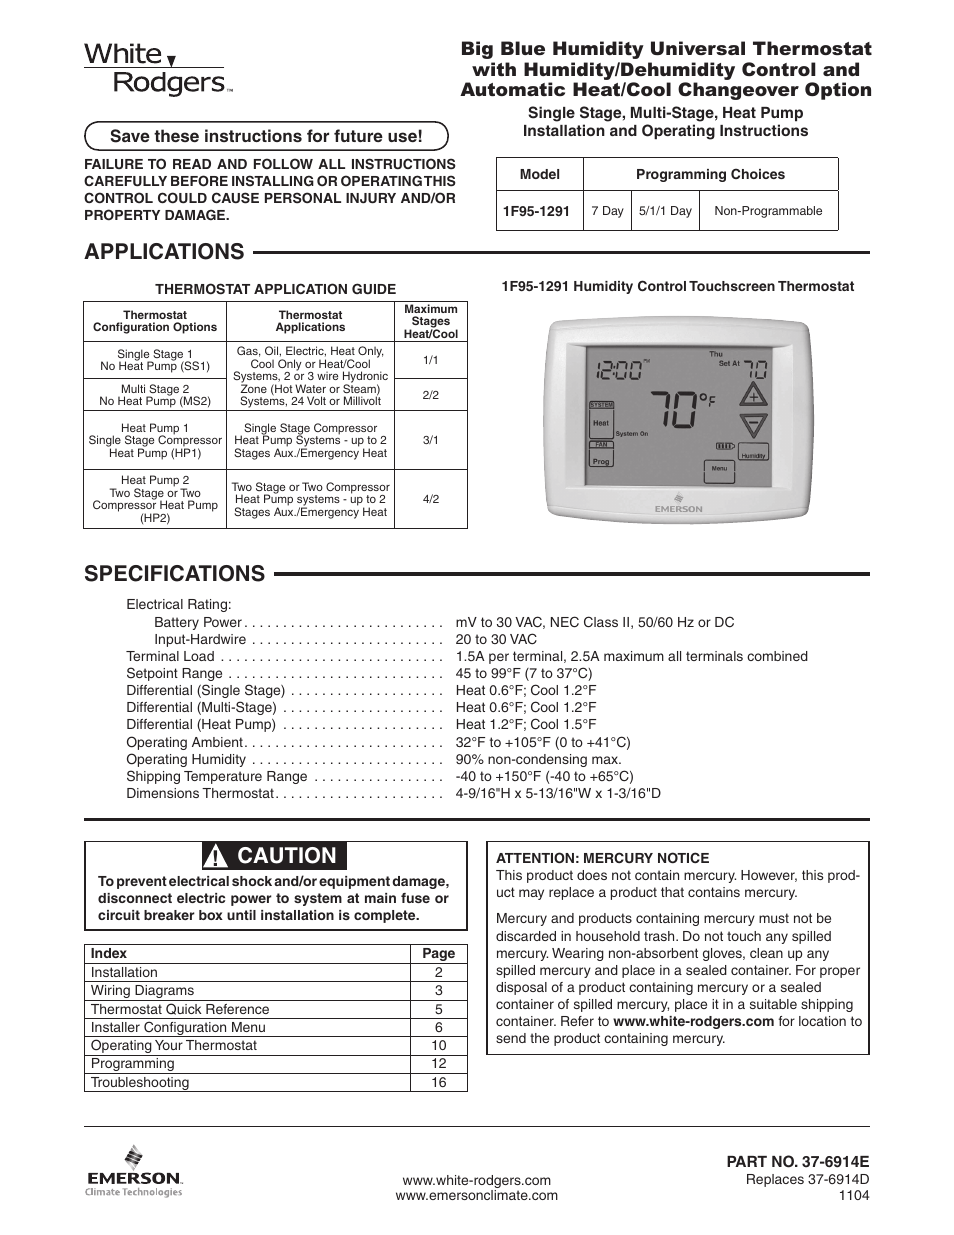 Emerson Thermostat Installation Instructions 2 Stage Heat Wiring Diagram Free Picture